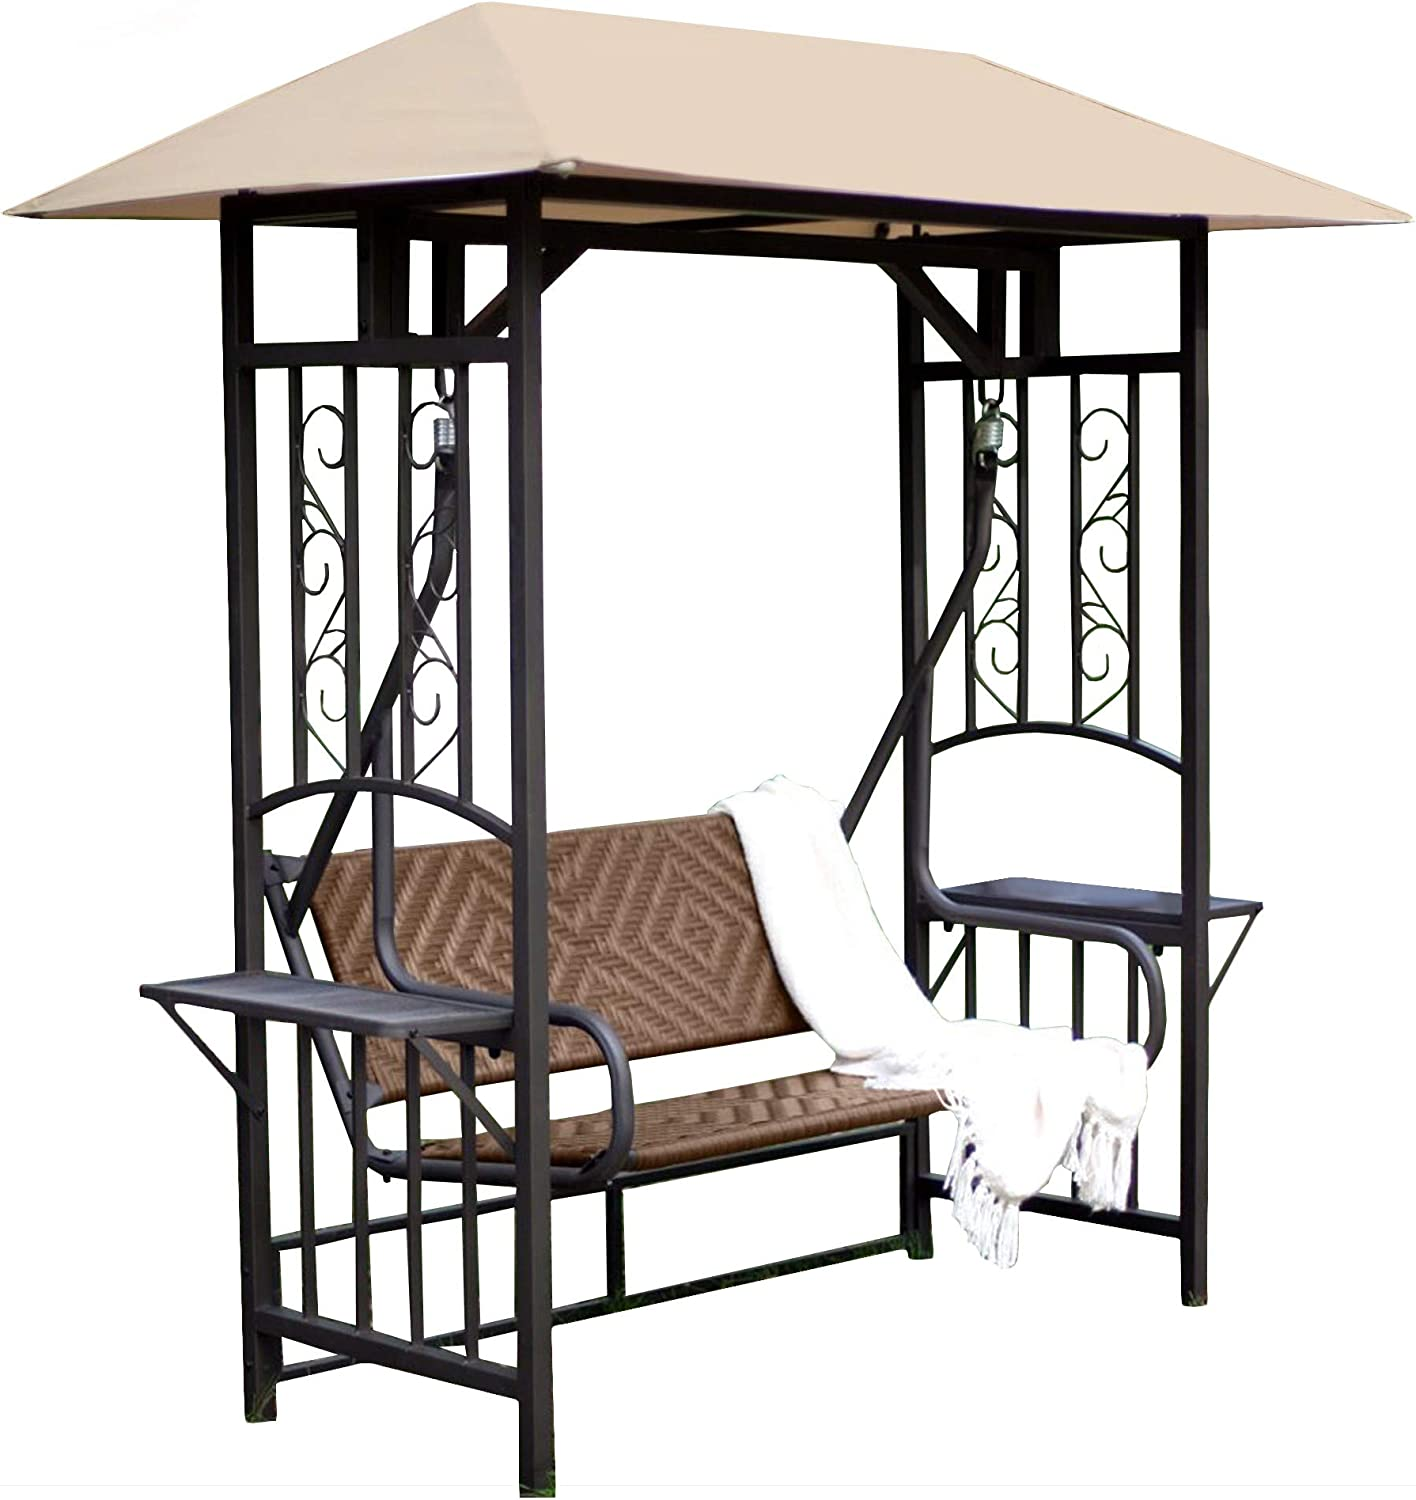 Garden Winds Replacement Canopy Top Cover for The Coral Coast Bellora Gazebo Swing - Standard 350